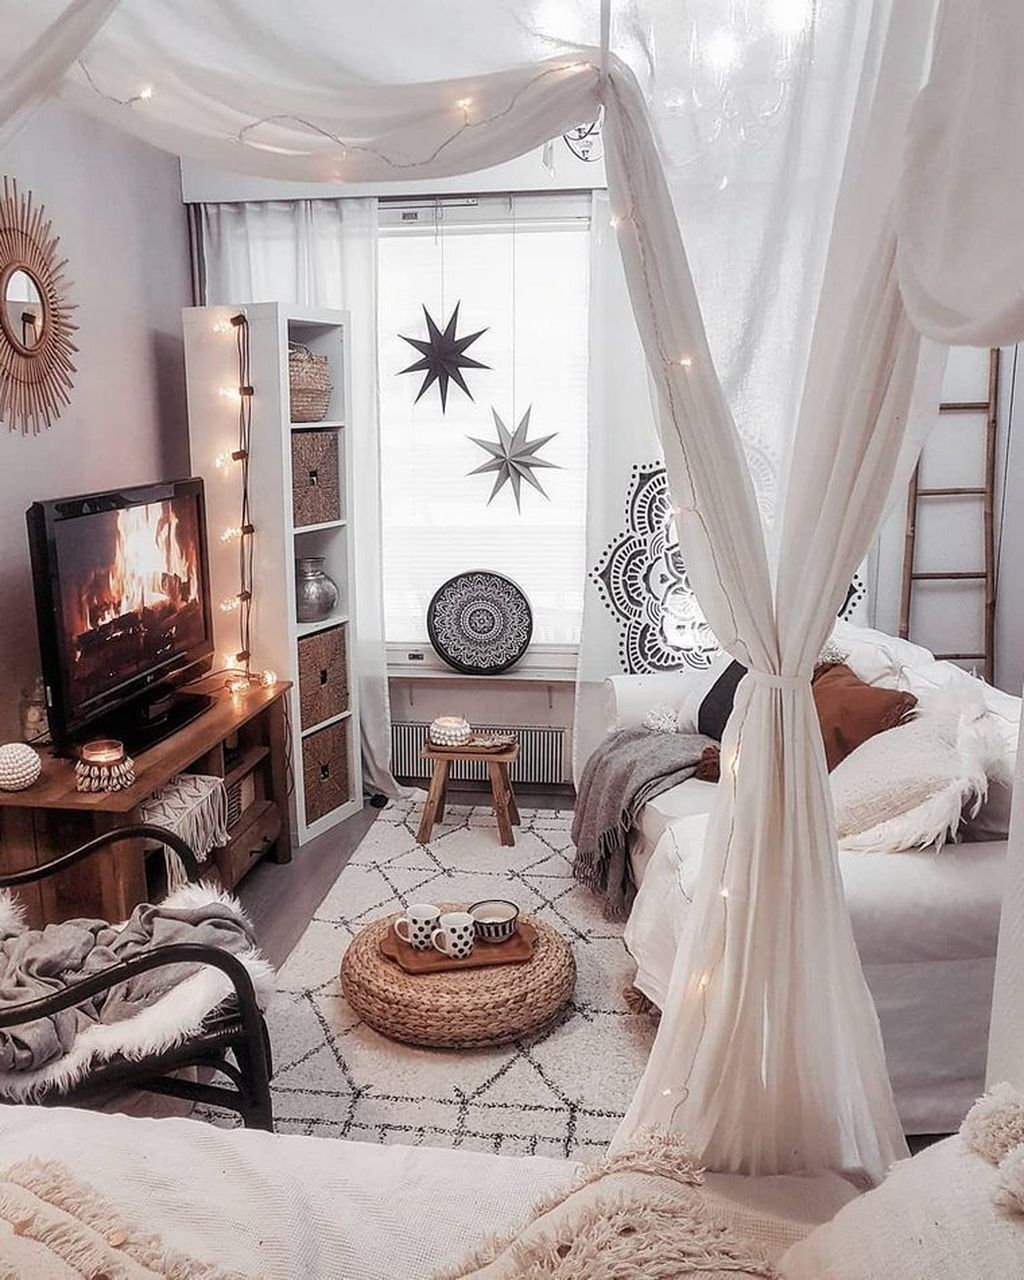 31 Lovely Bohemian Bedroom Decor Ideas You Have To See - MAGZHOUSE